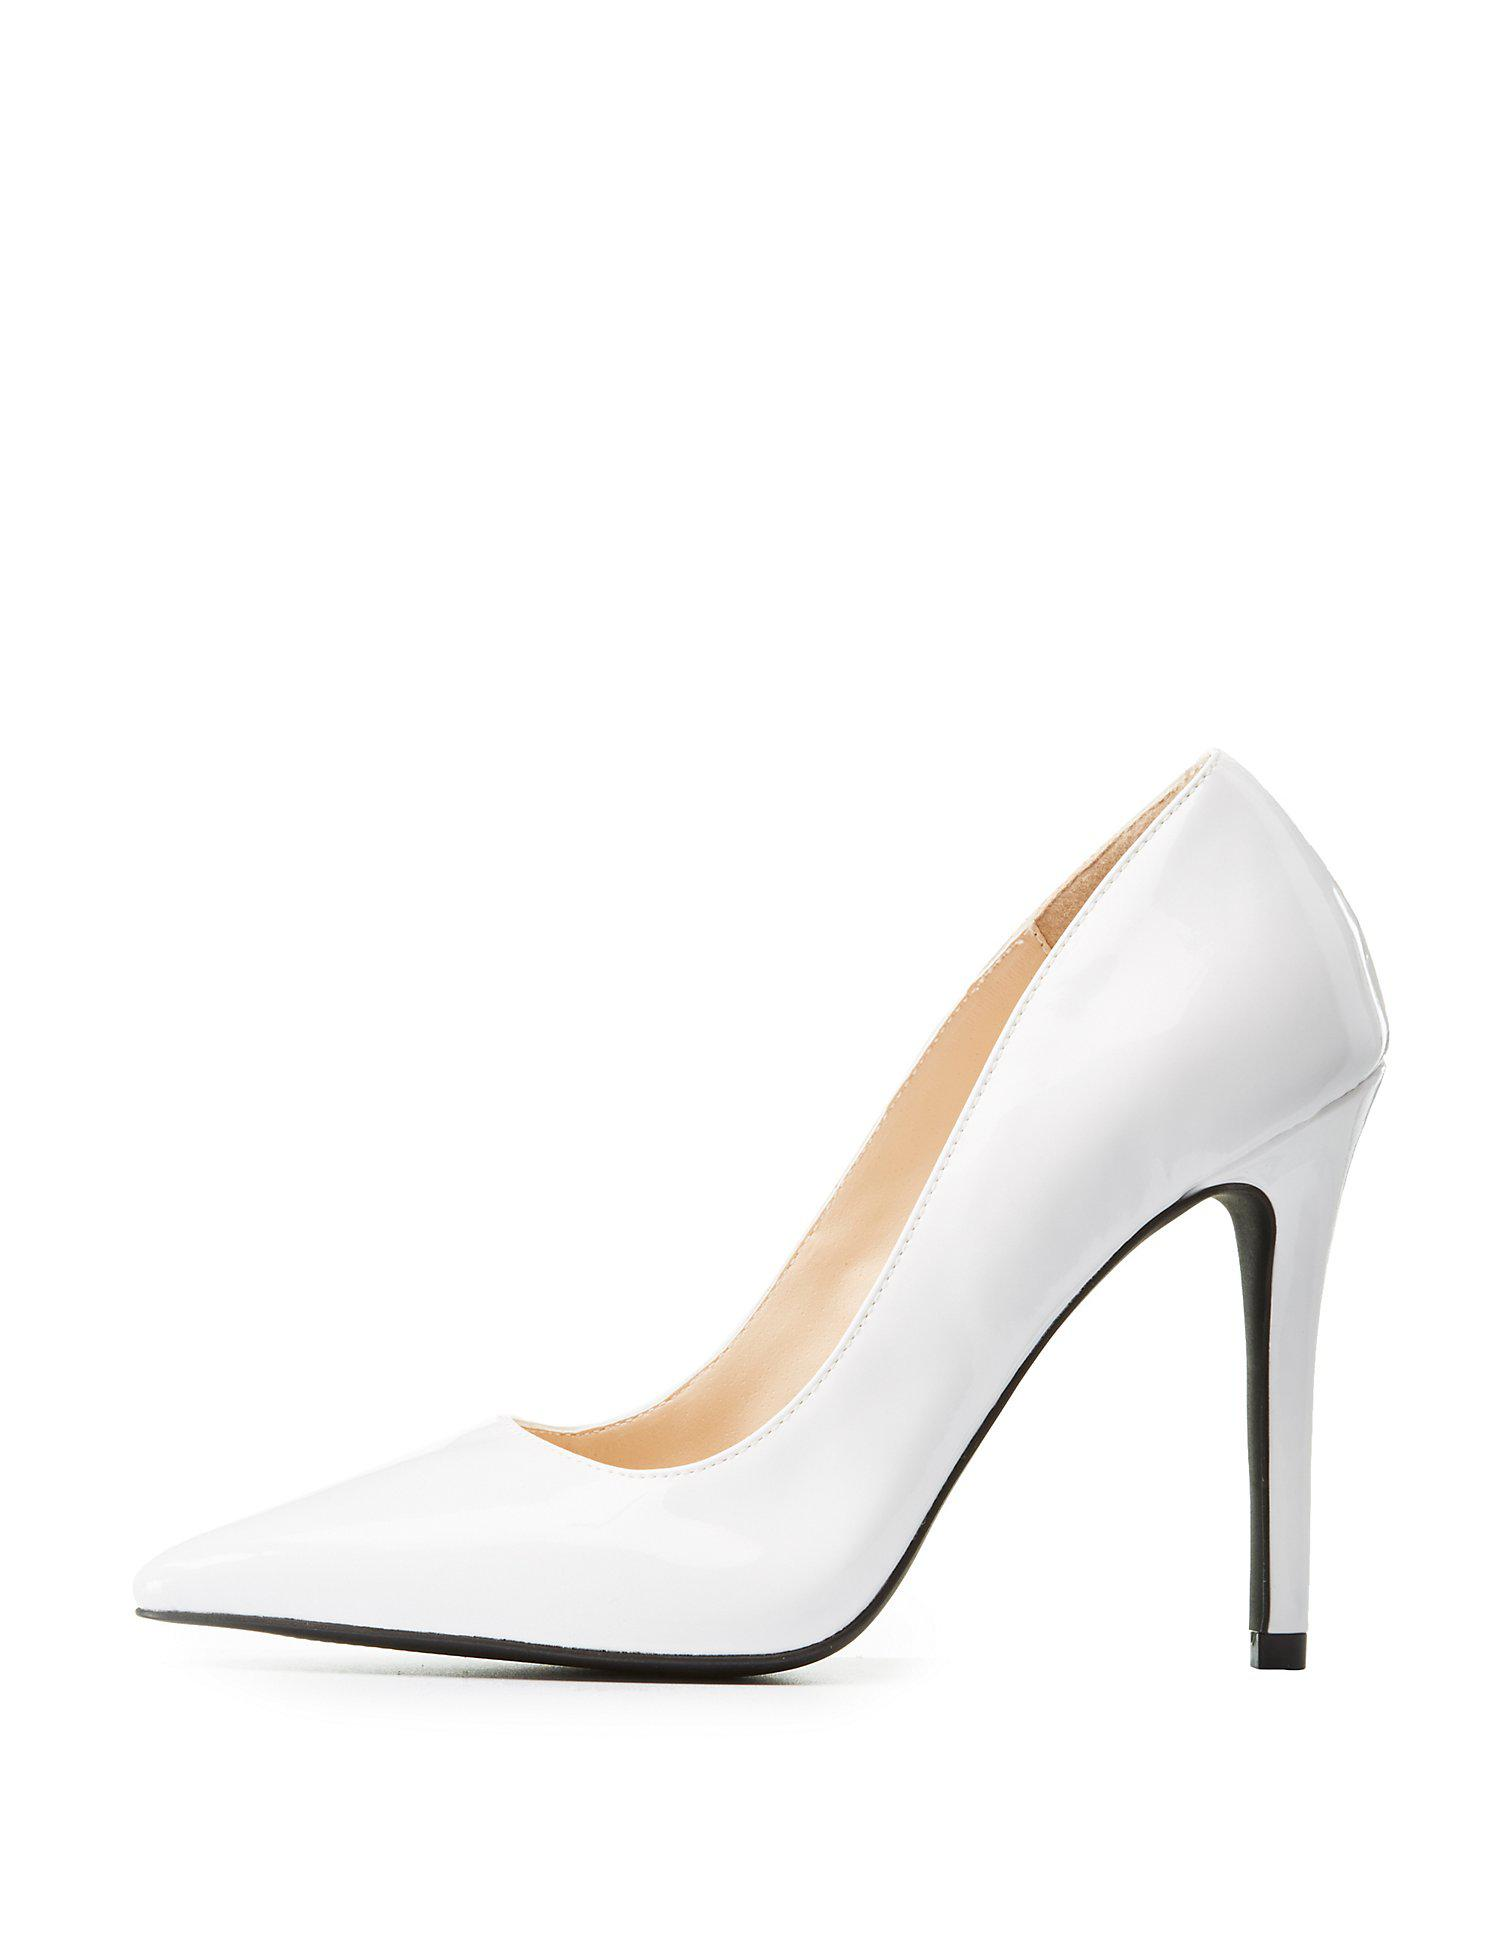 37717830f6 Lyst - Charlotte Russe Qupid Pointed Toe Pumps in White